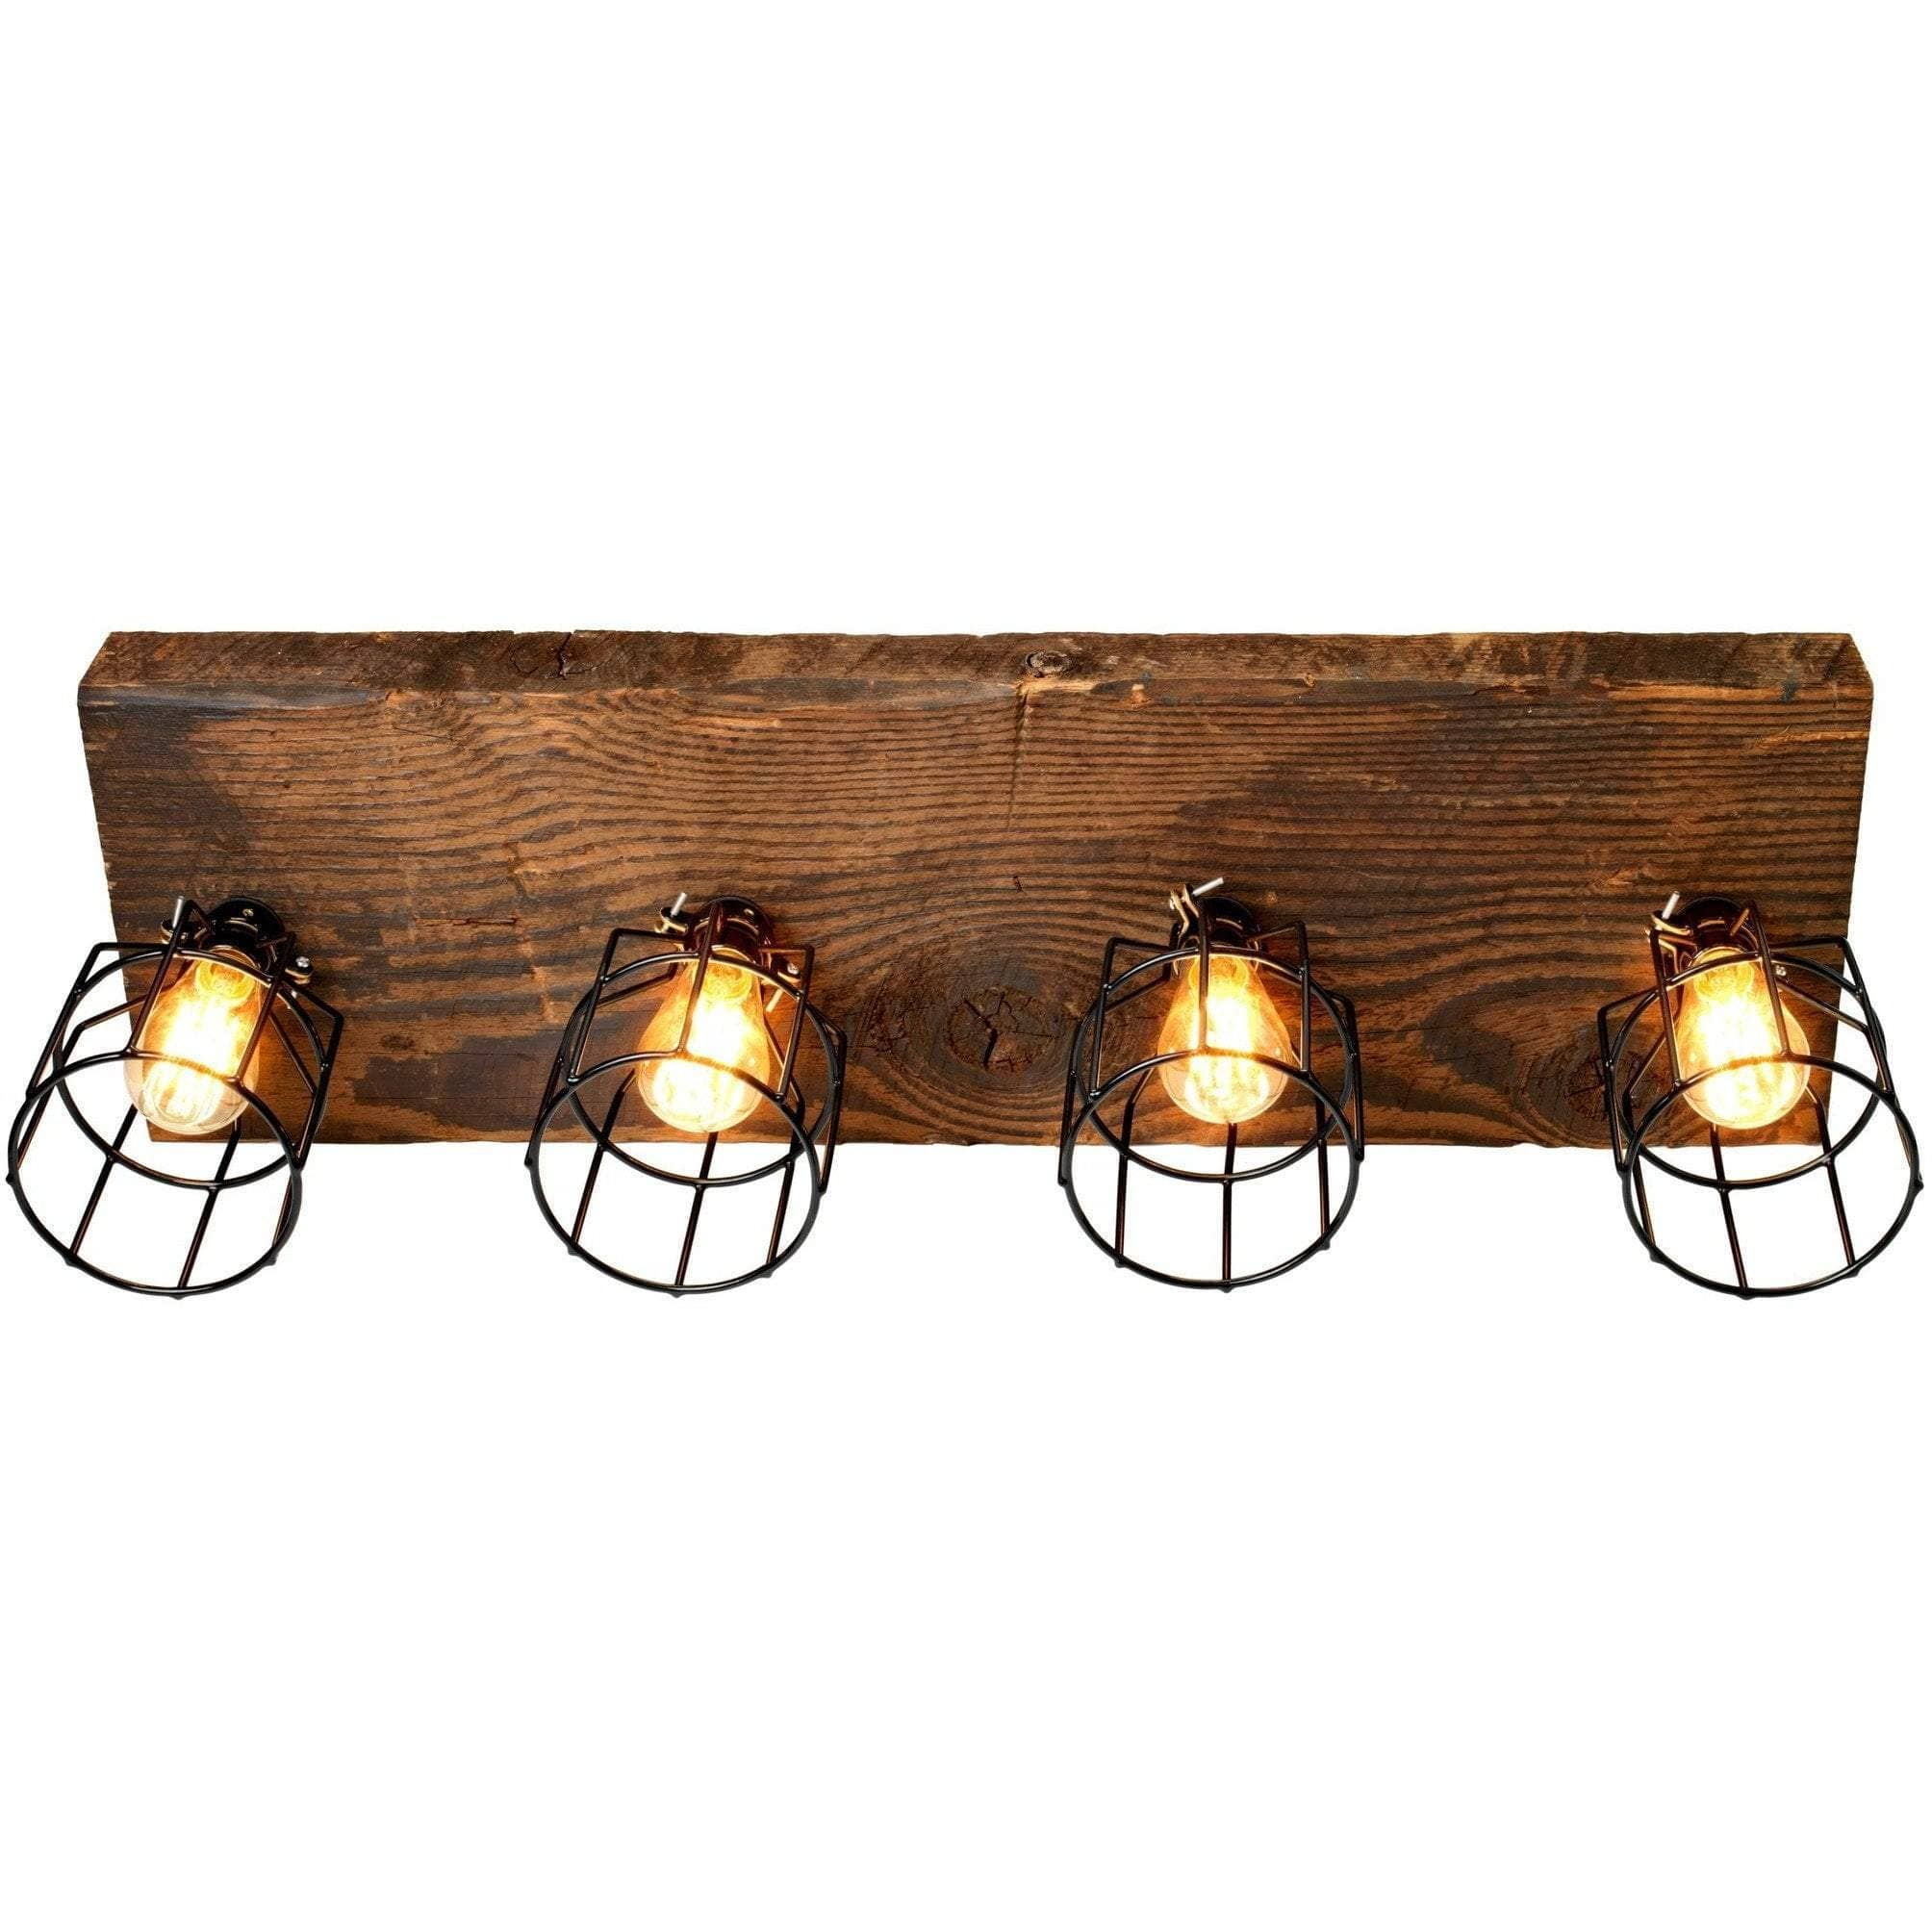 "Lighting 32"" 4 Light Reclaimed Wood Light"